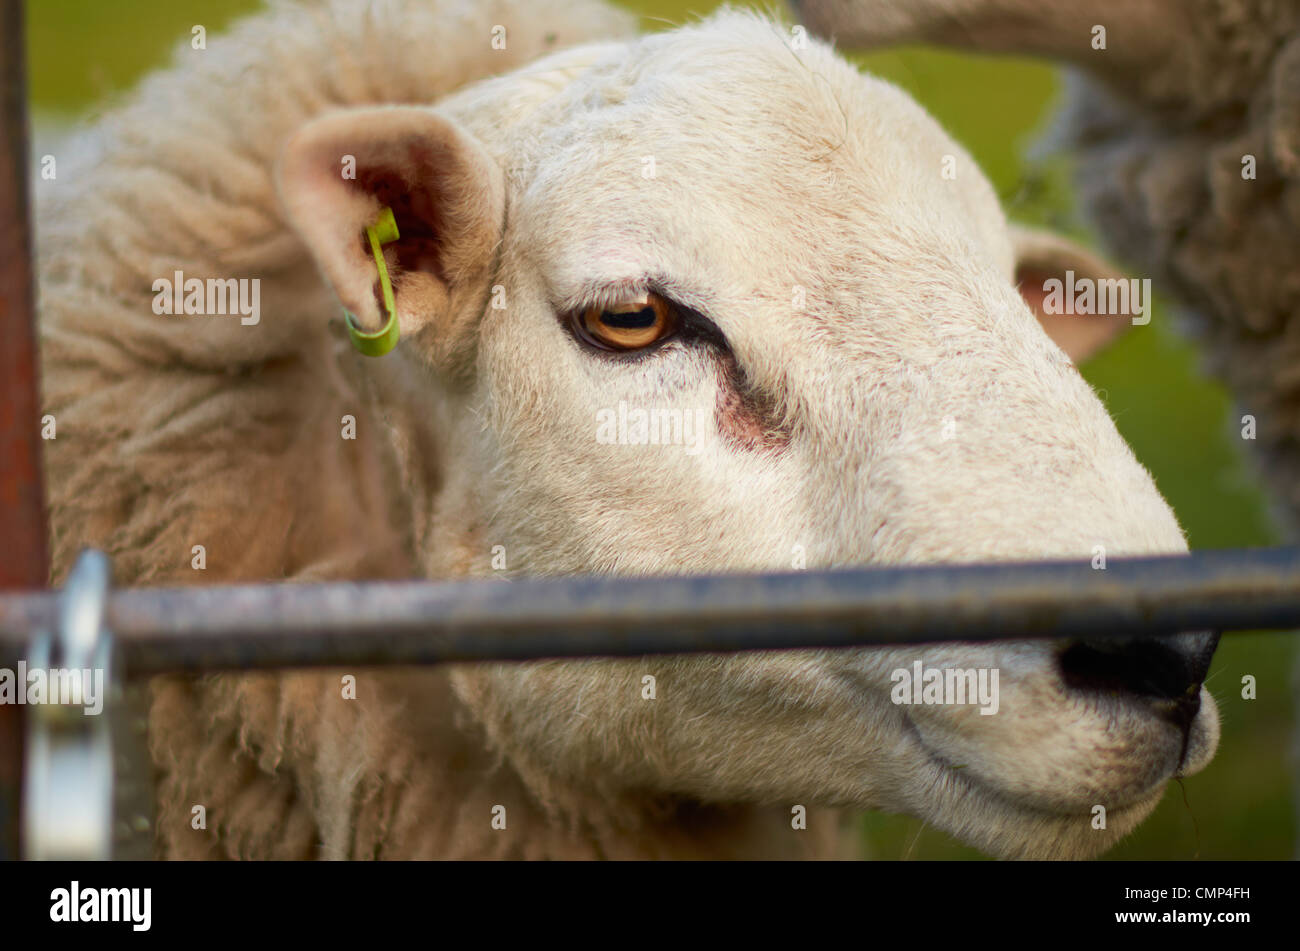 sheep behind a gate / fence. Stock Photo